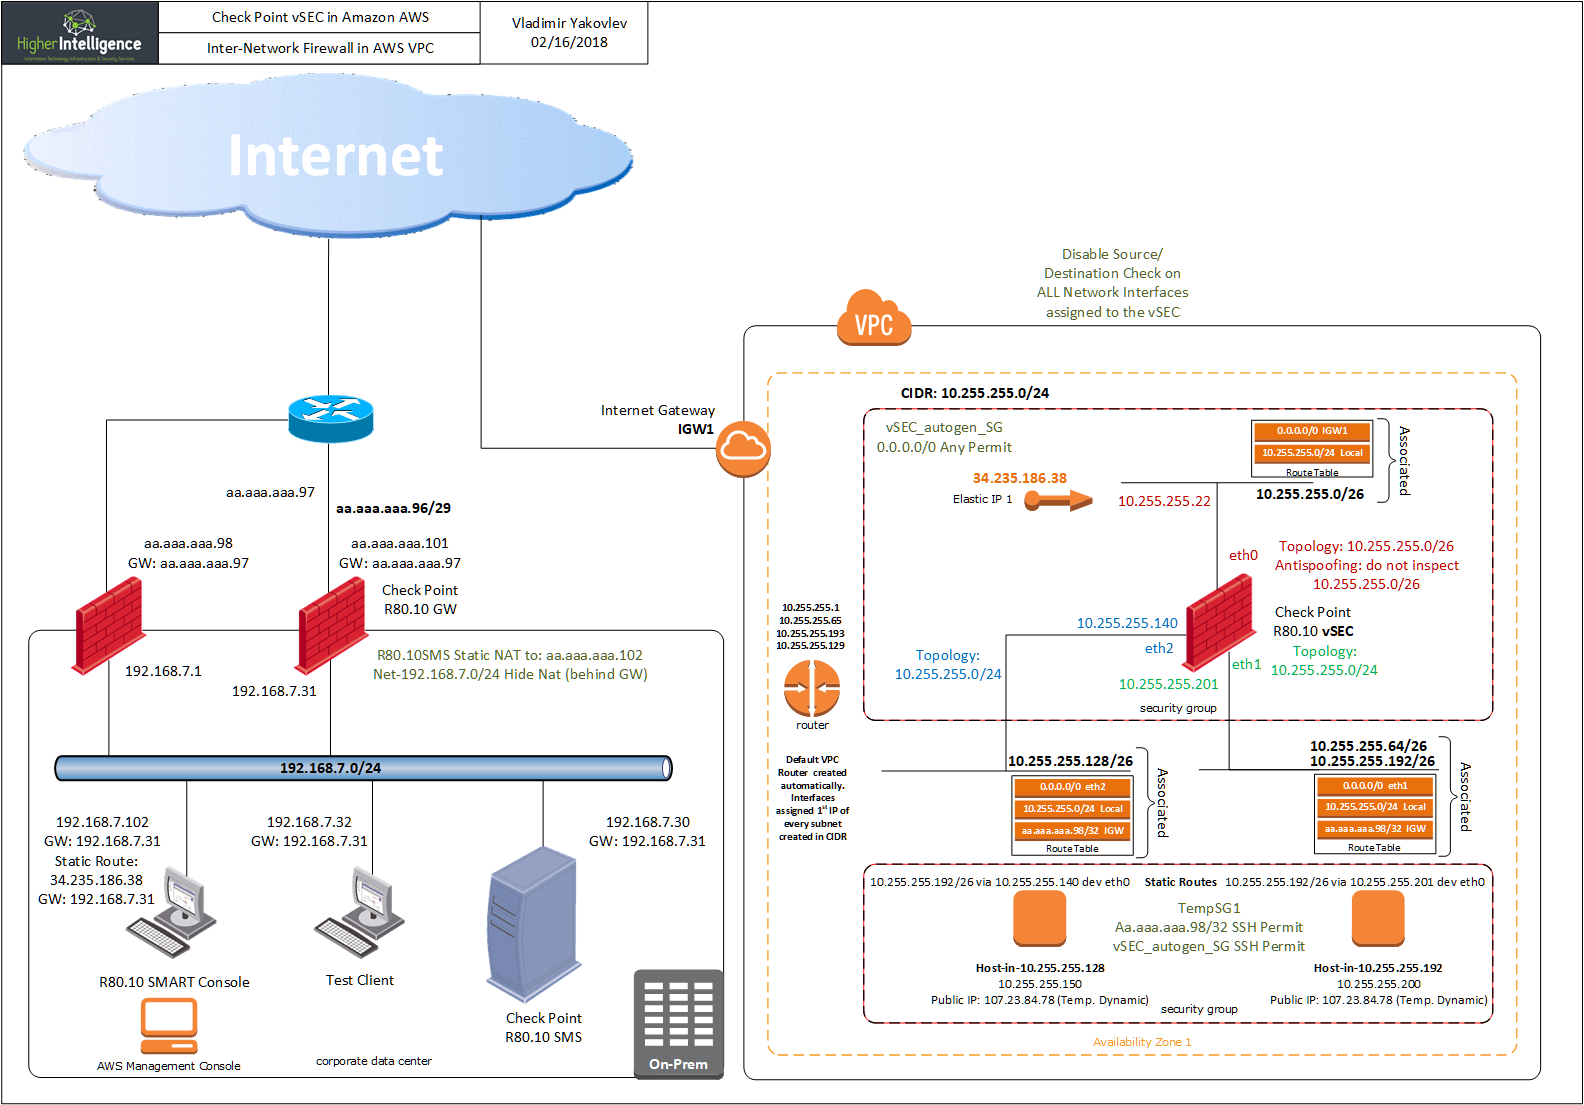 Inter-Network Firewall in AWS VPC